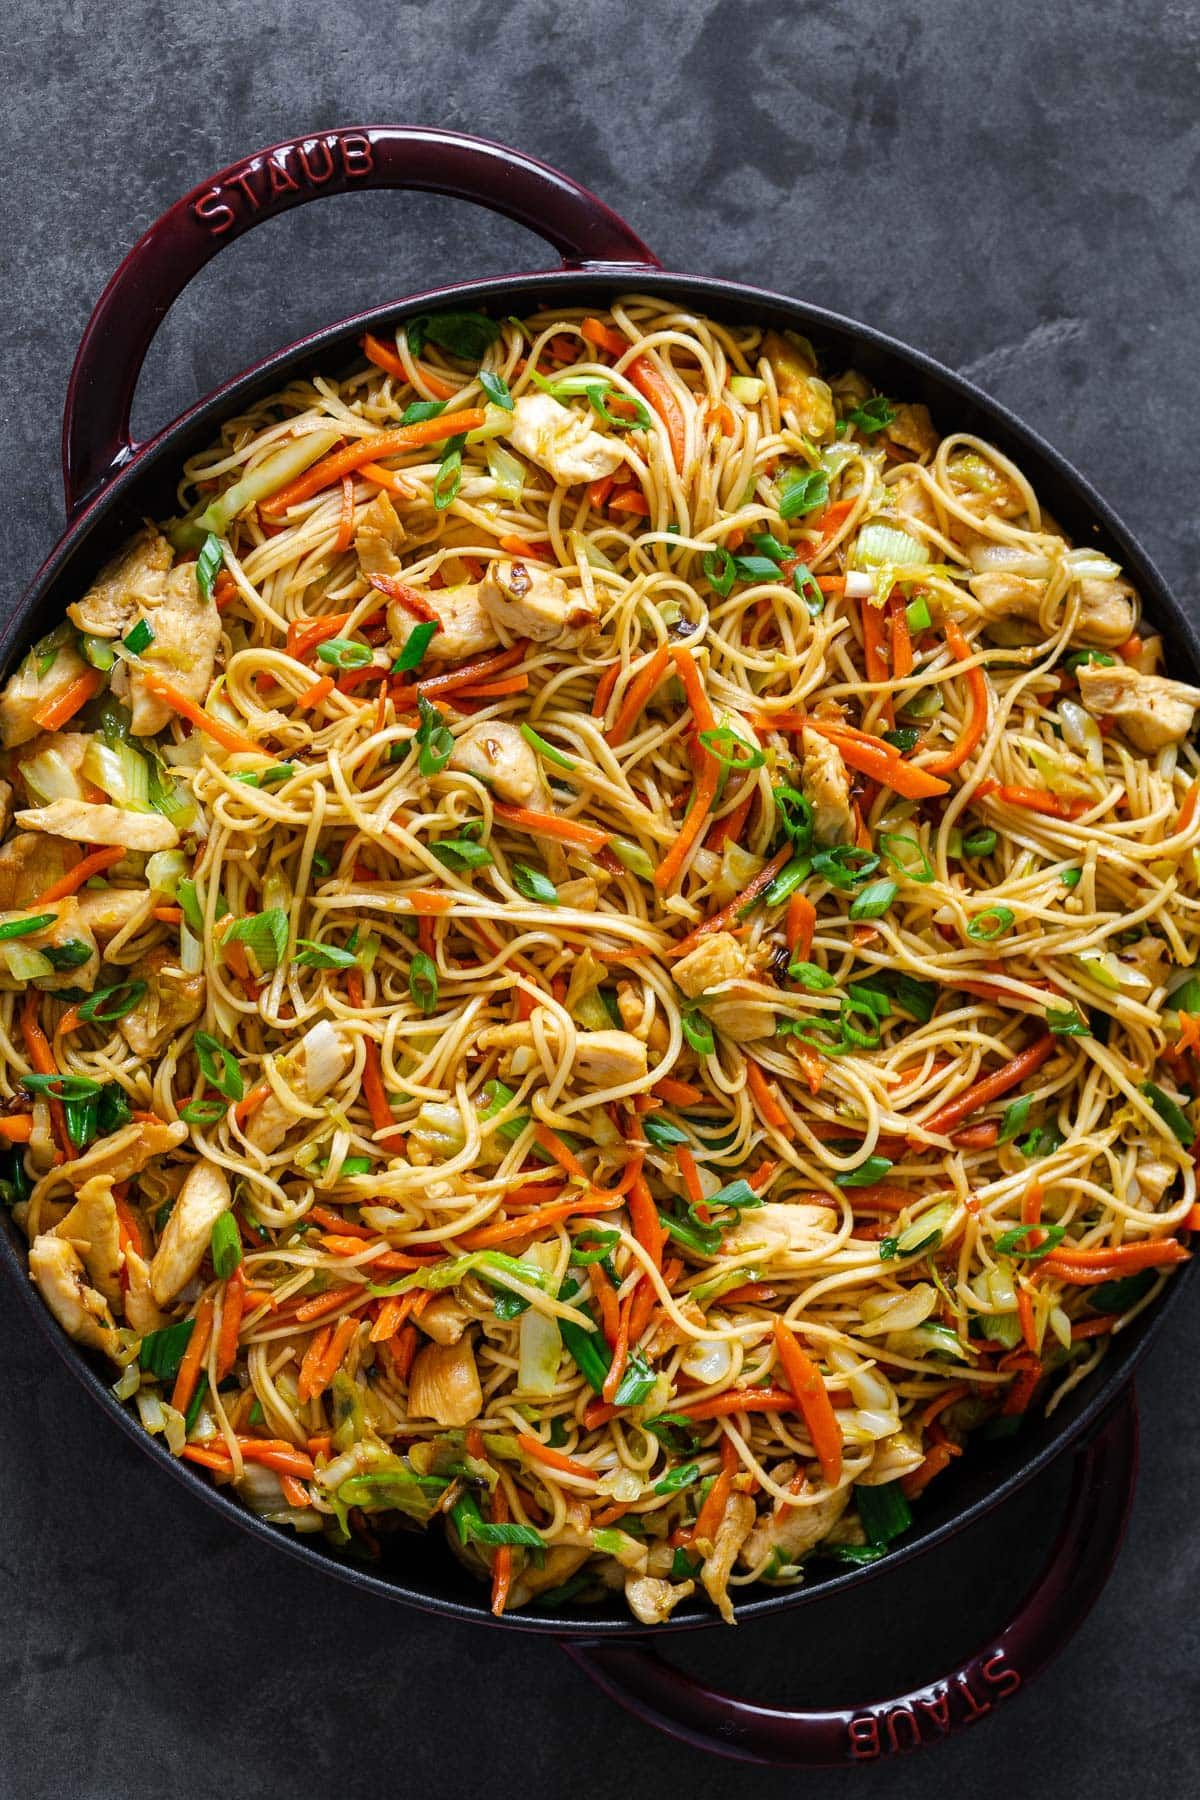 Homemade chicken chow mein is way better than takeout a